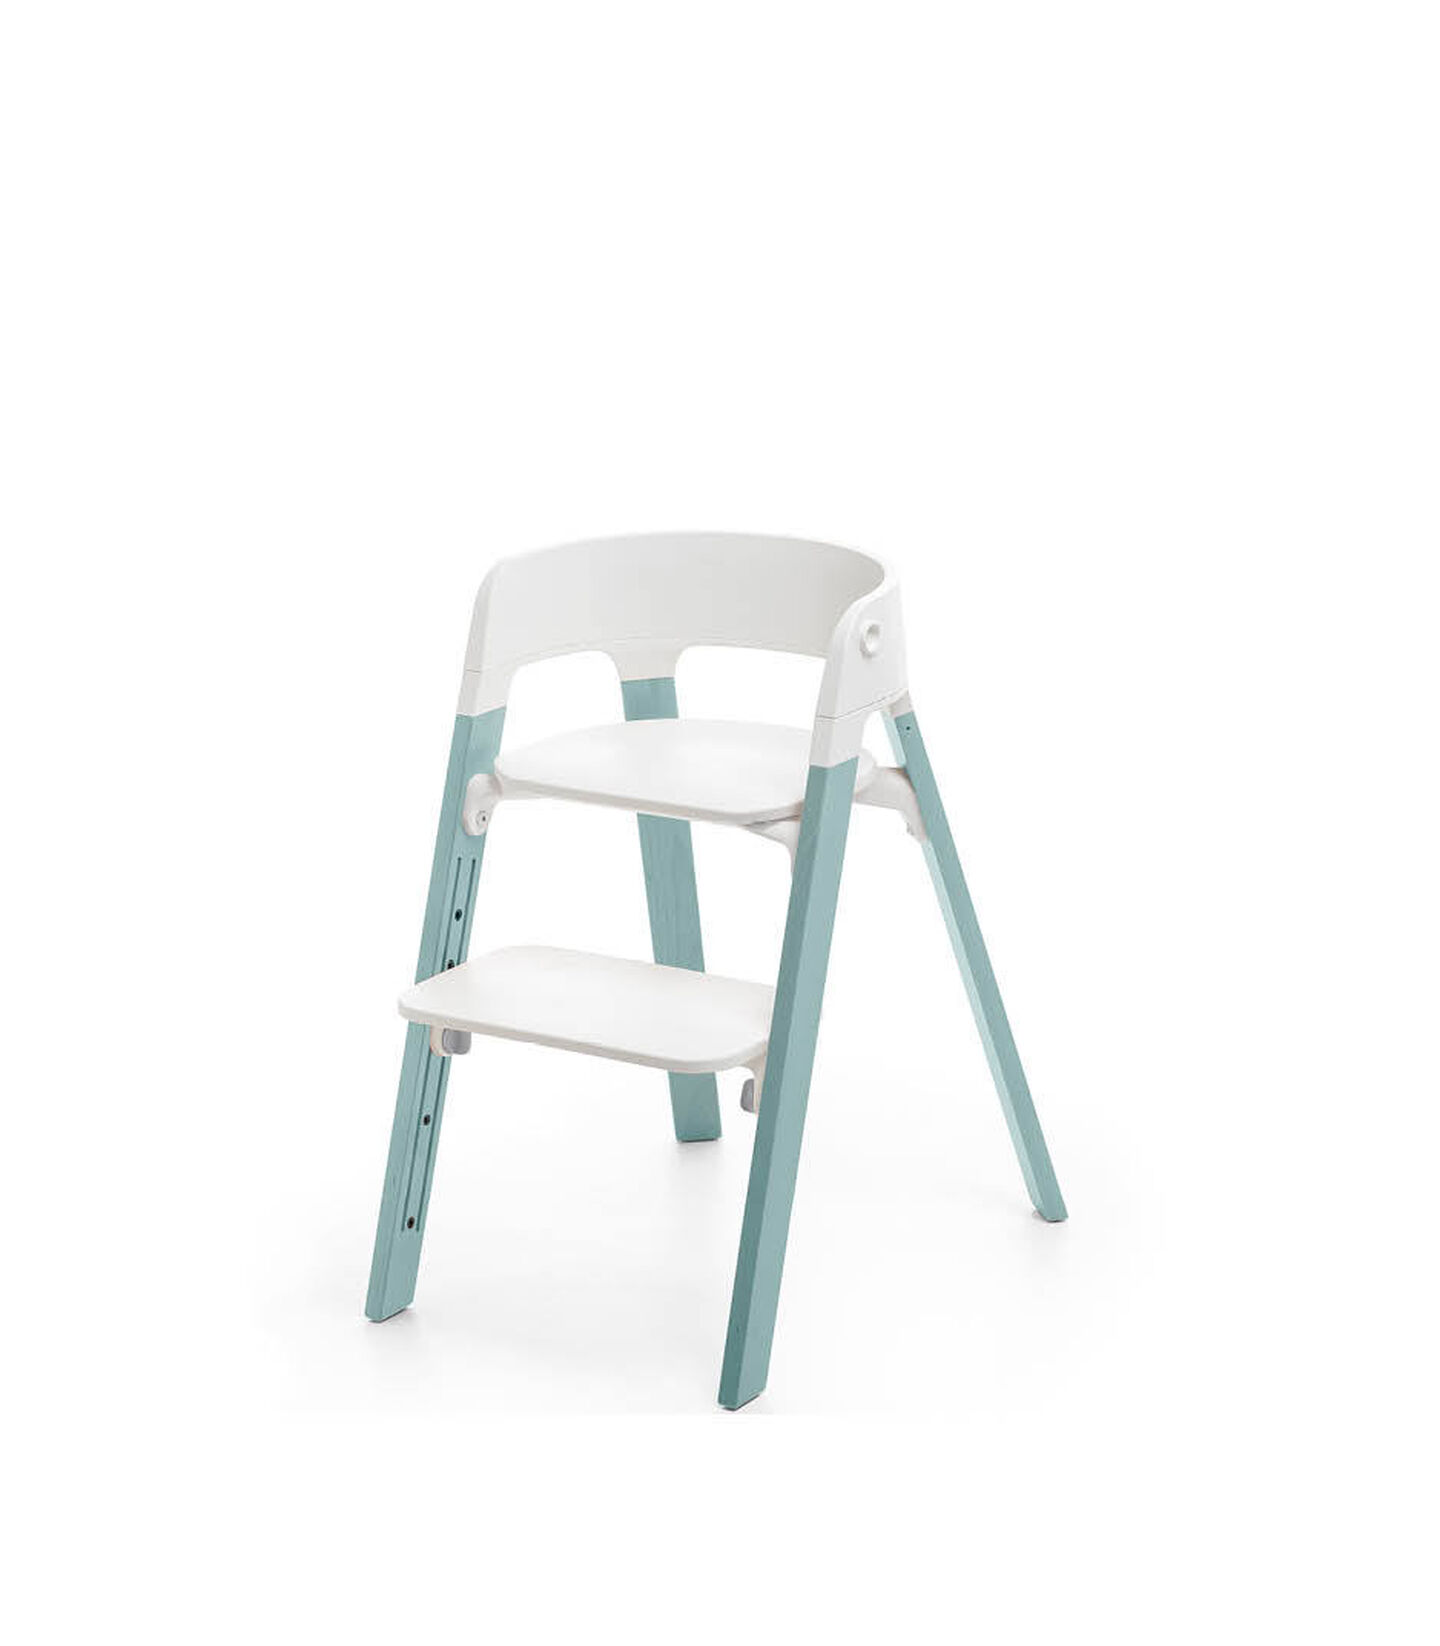 Stokke® Steps™ Aqua Blue. White plastic parts.